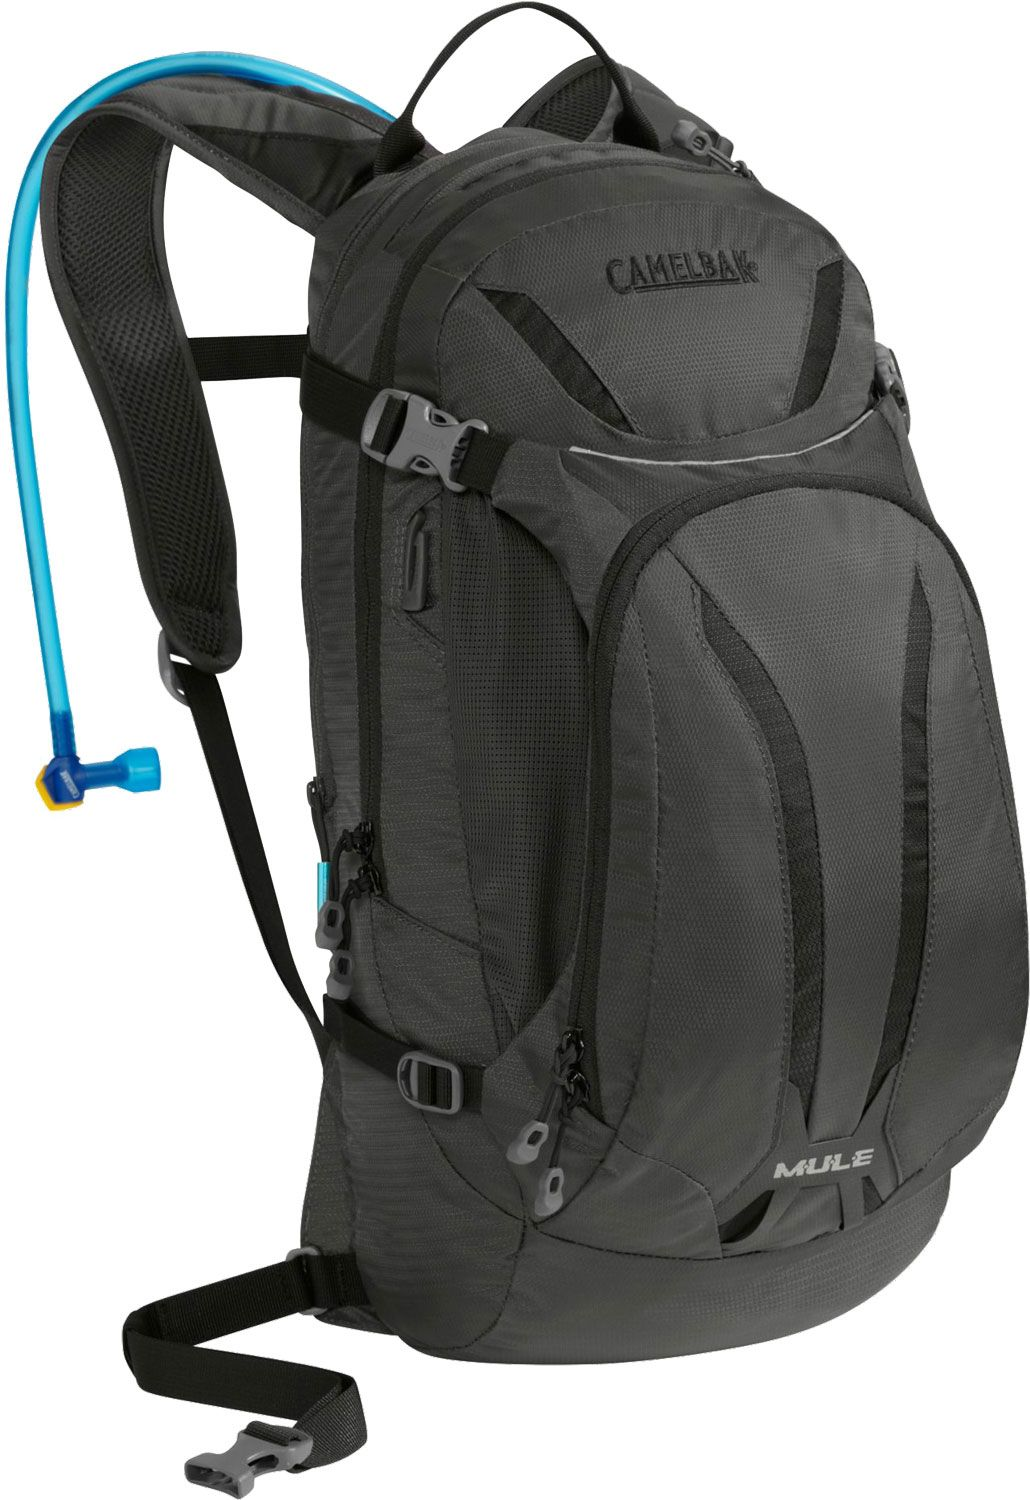 CamelBak Adult Mule 100 oz. Hydration Pack| DICK'S Sporting Goods